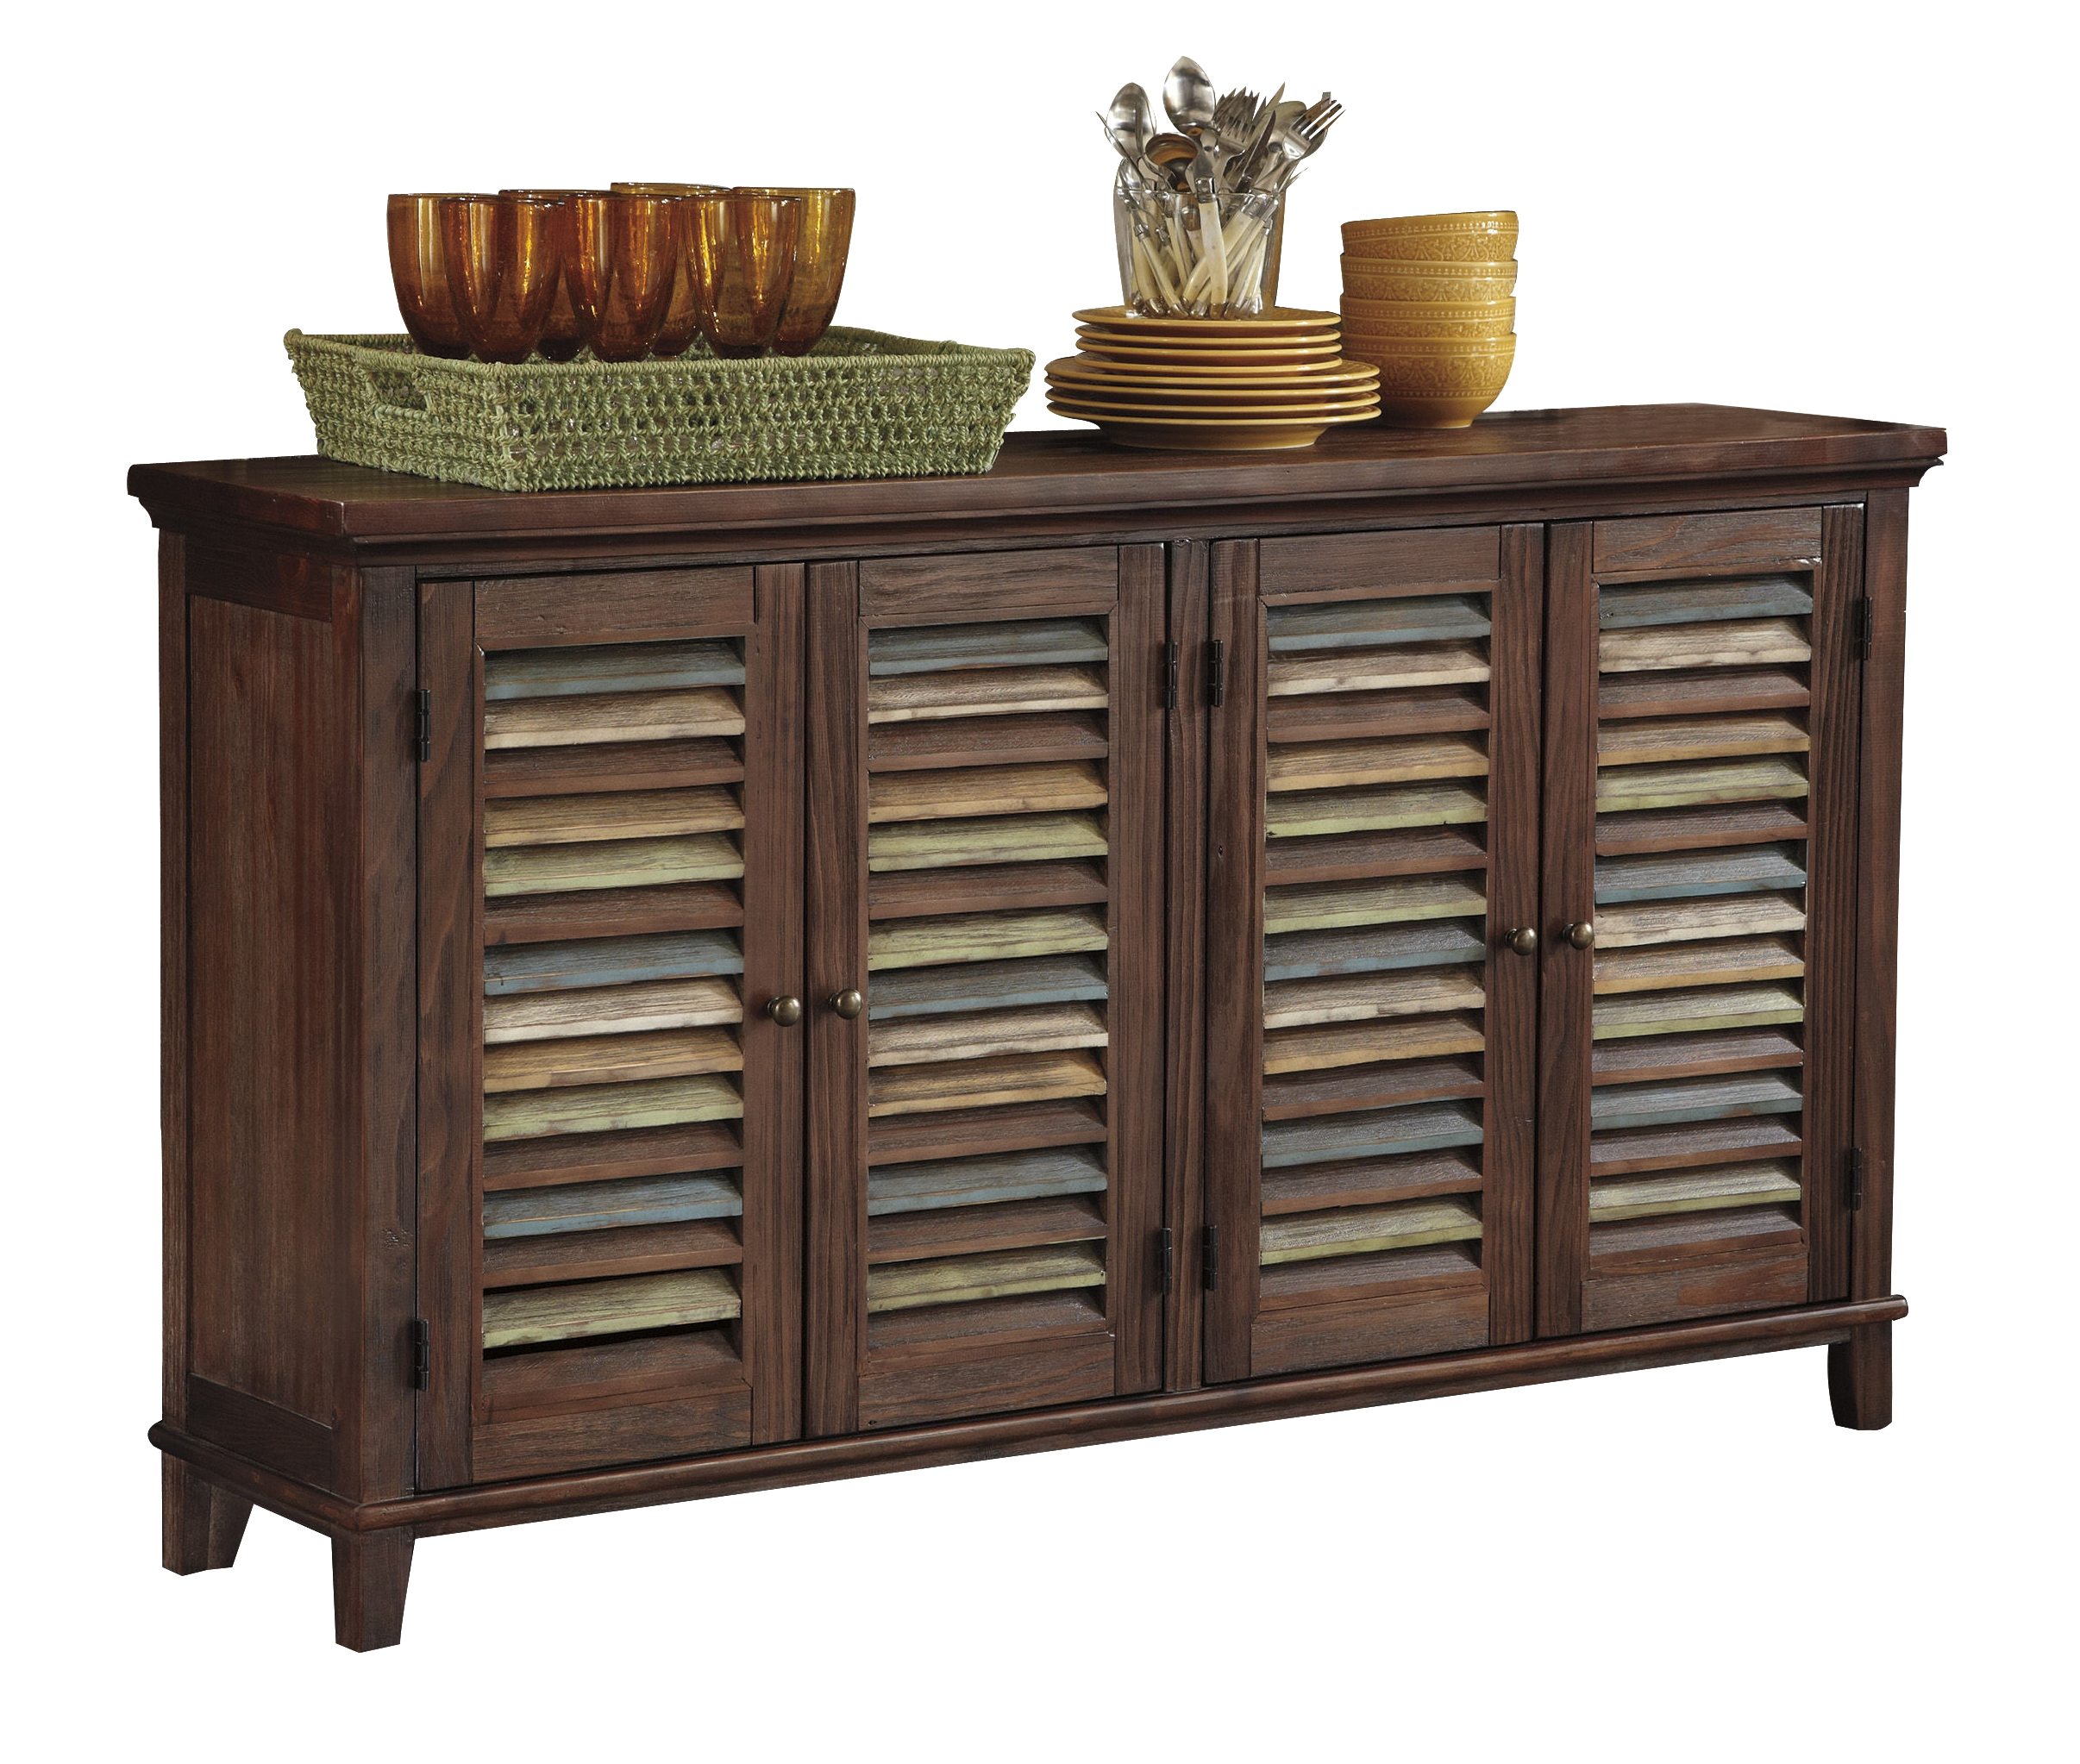 Ashley Furniture Mestler Dining Server The Classy Home